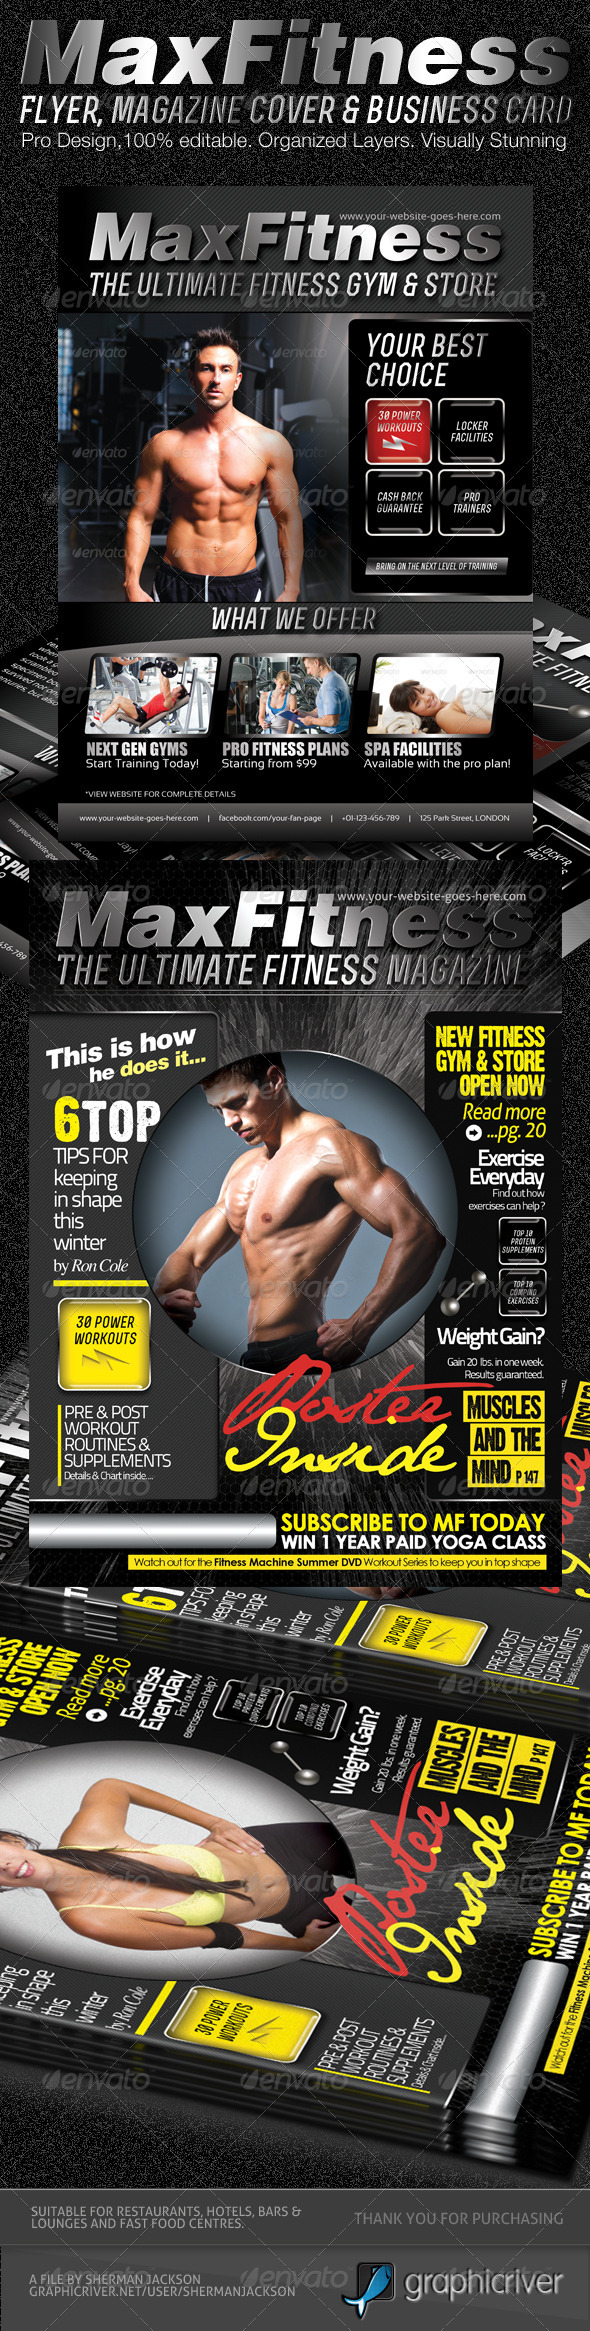 MaX Fitness Flyer & Magazine Cover Template